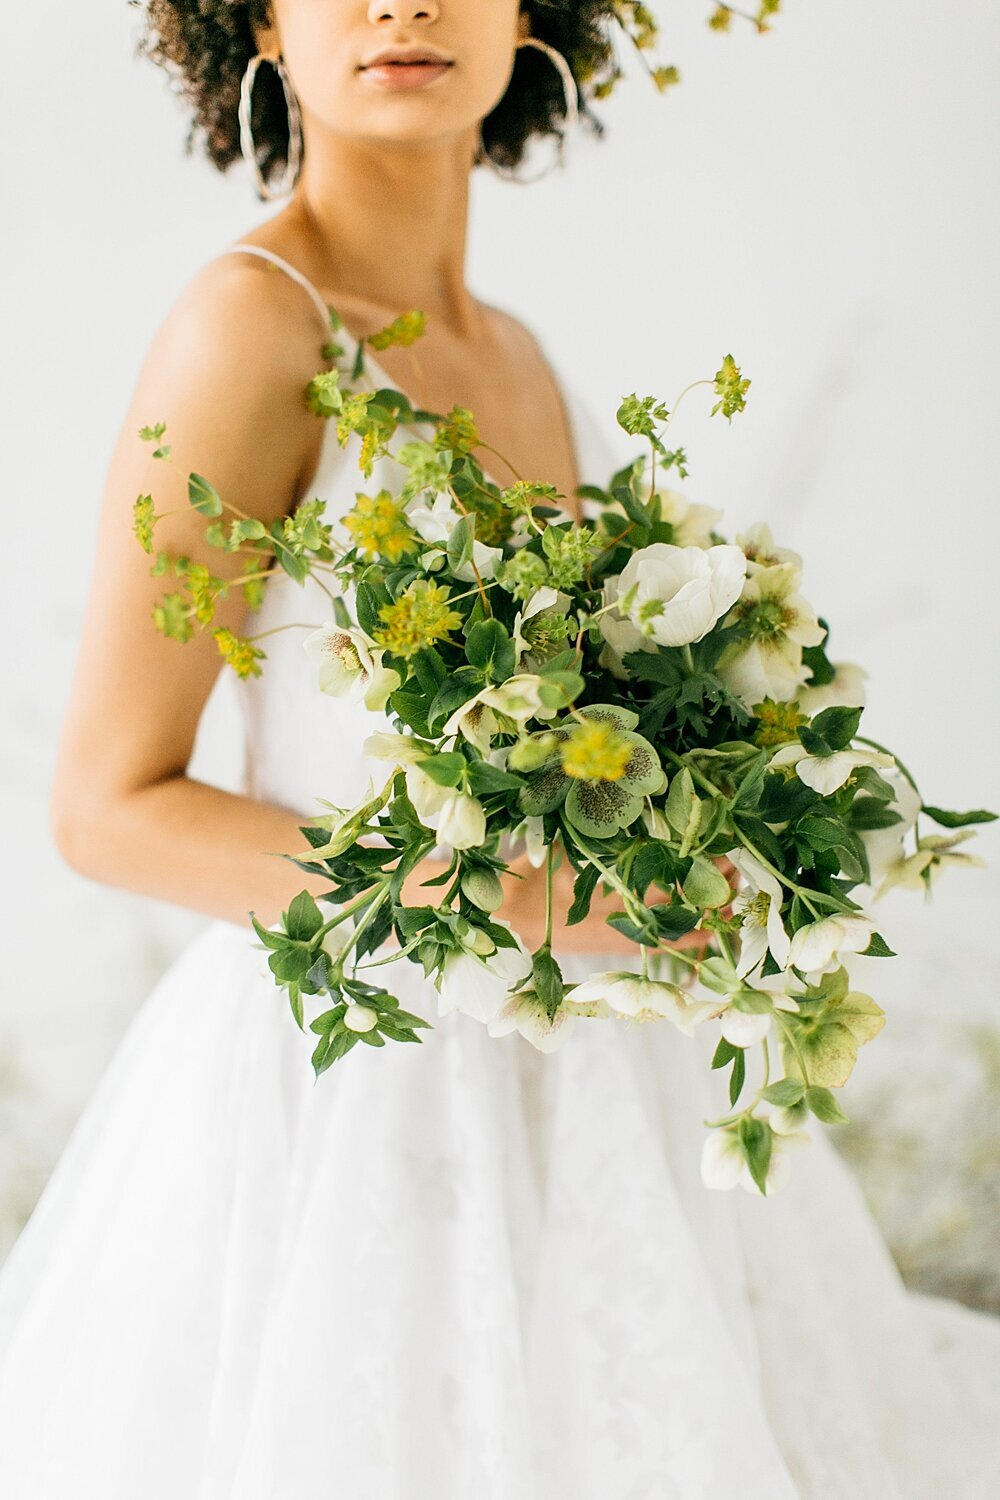 leigh-and-mitchell-spring-bridal-shoot-white-and-green-bouquet-hellabore-bridal-bouquet